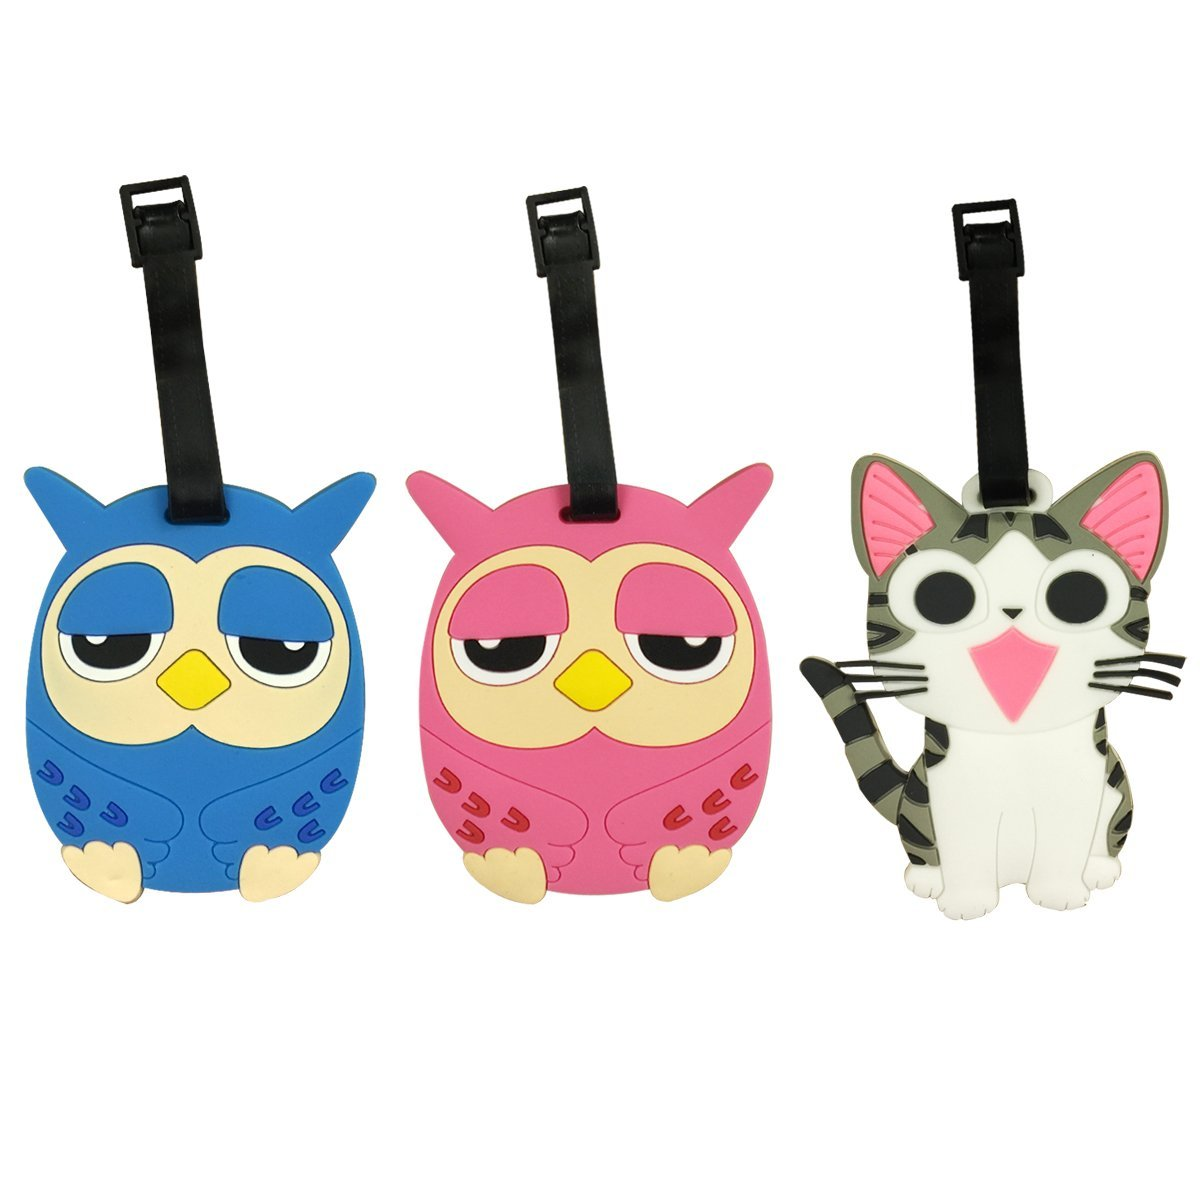 Wrapables Silicone Animal Luggage Tag with ID Card (Set of 3)